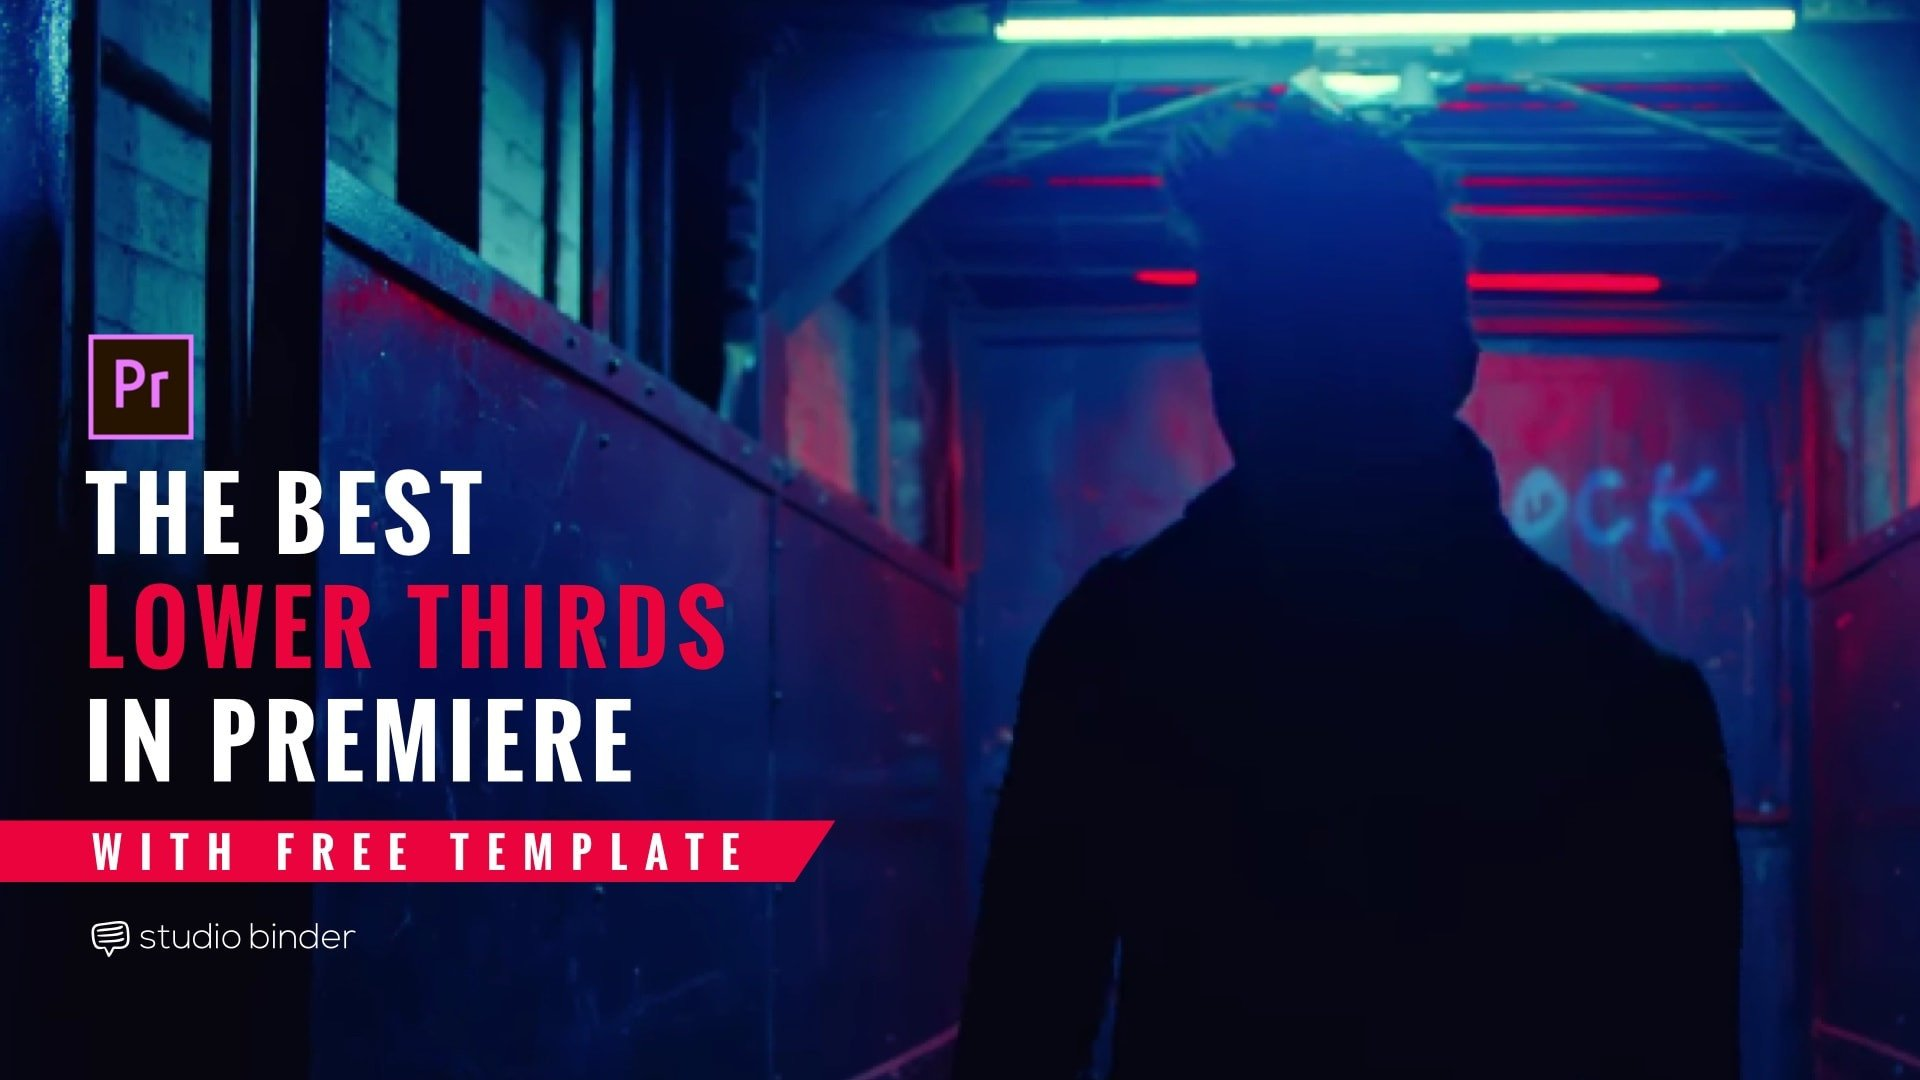 Free Lower Thirds Templates Premiere the Best Lower Thirds Templates for Premiere [free Download]